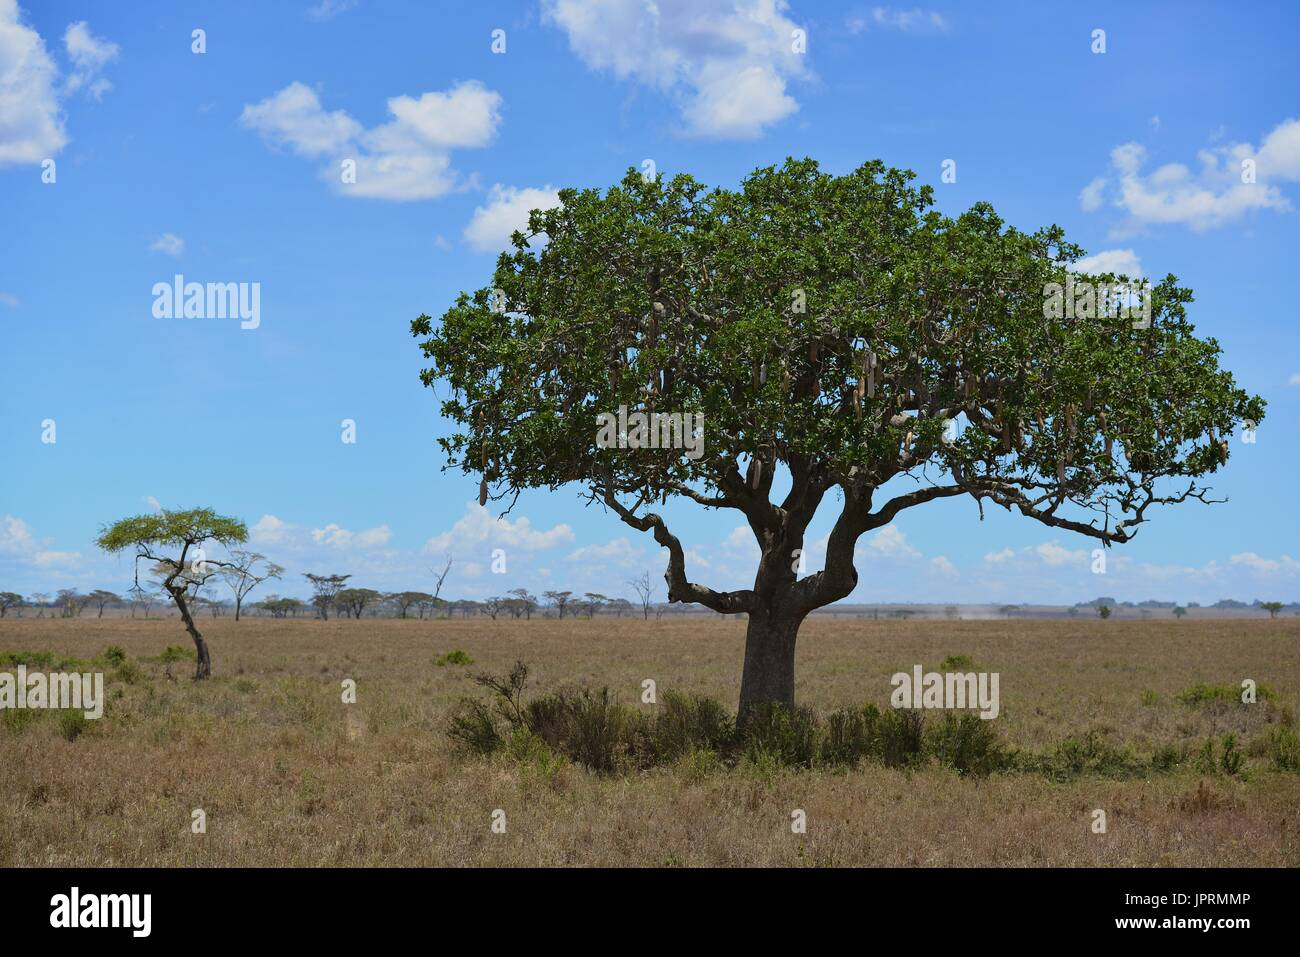 African Safari Landscape in Tanzania Stock Photo